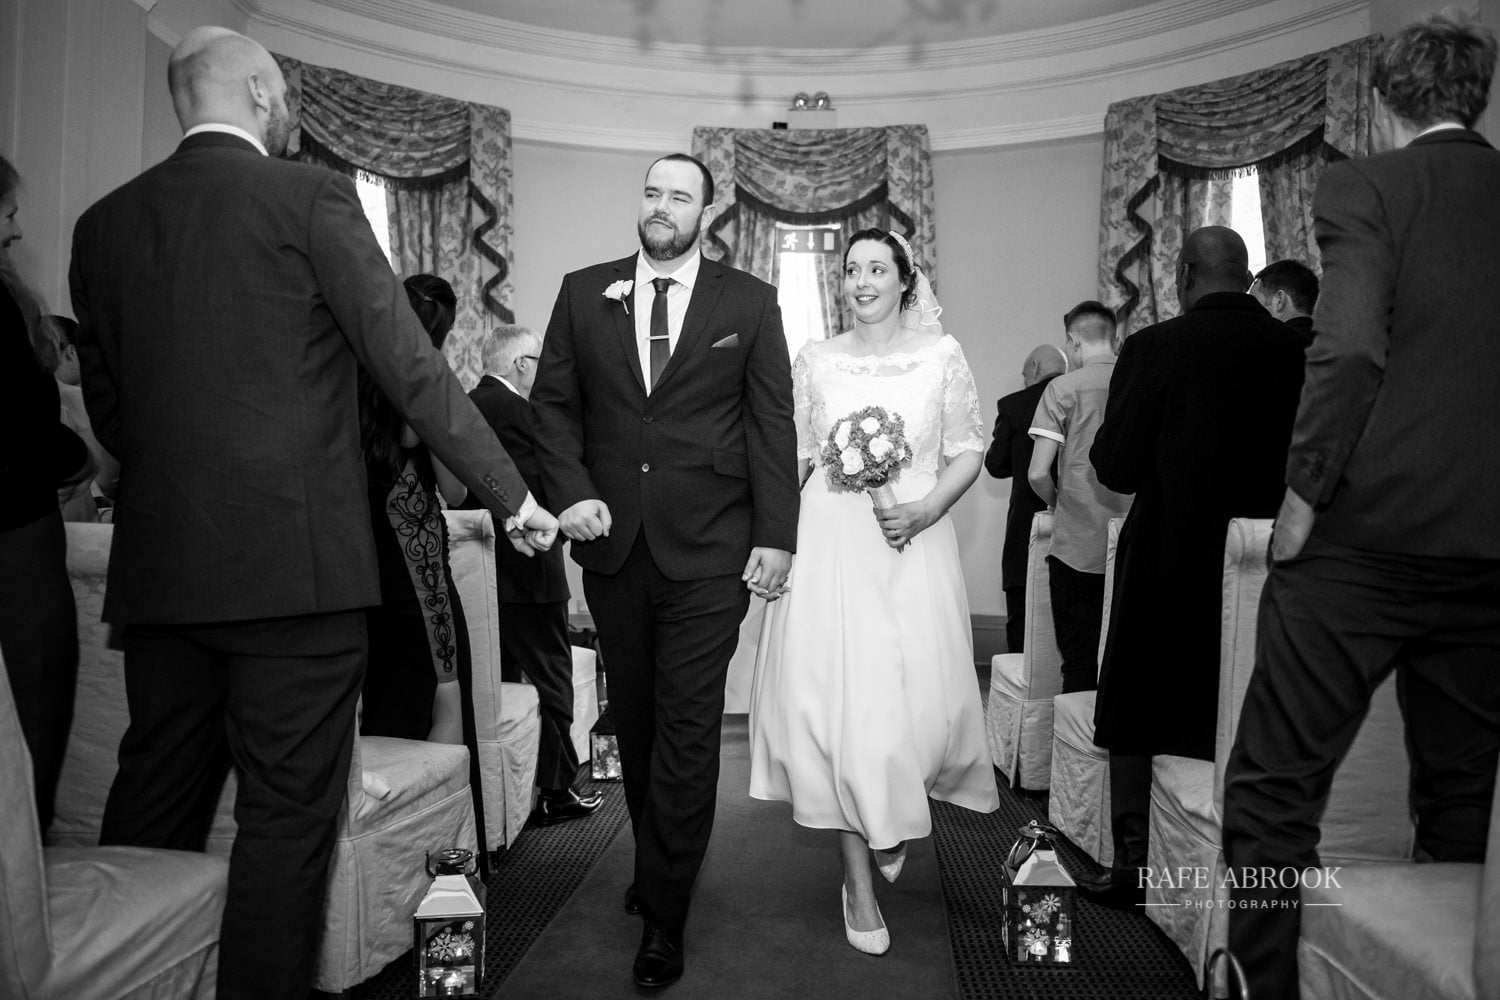 woodland manor hotel clapham bedford wedding hertfordshire wedding photographer-1107.jpg